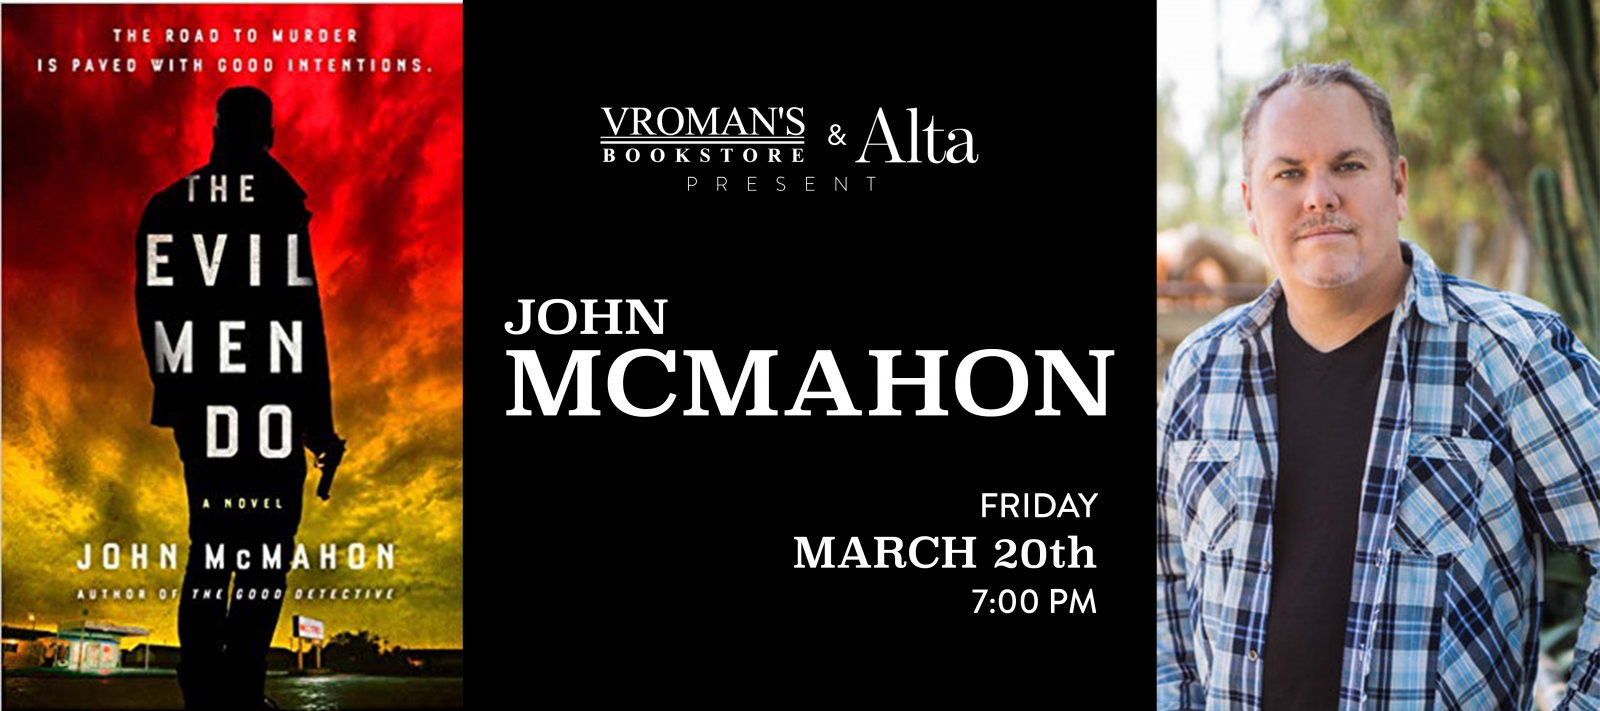 John McMahon book signing on Friday, March 20,at  7pm